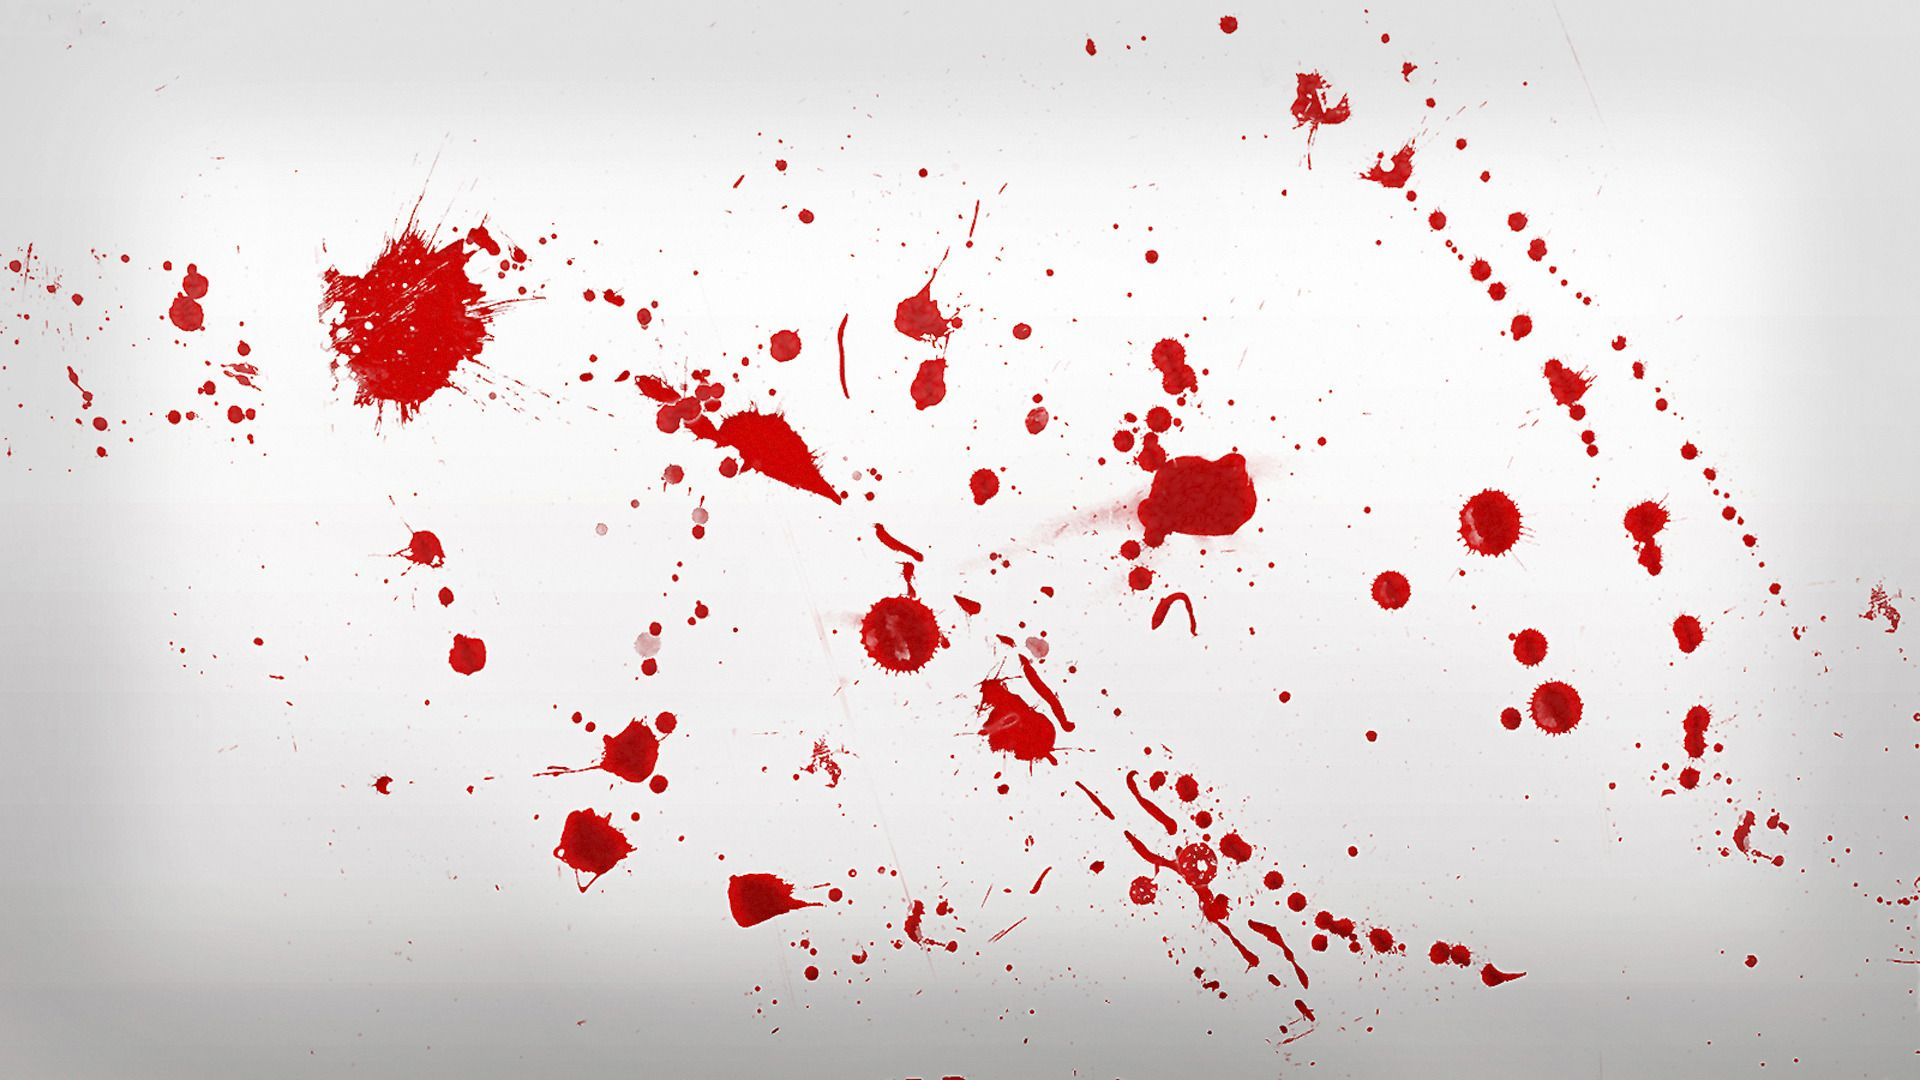 dexter blood splatter wallpaper | Graphic design ...